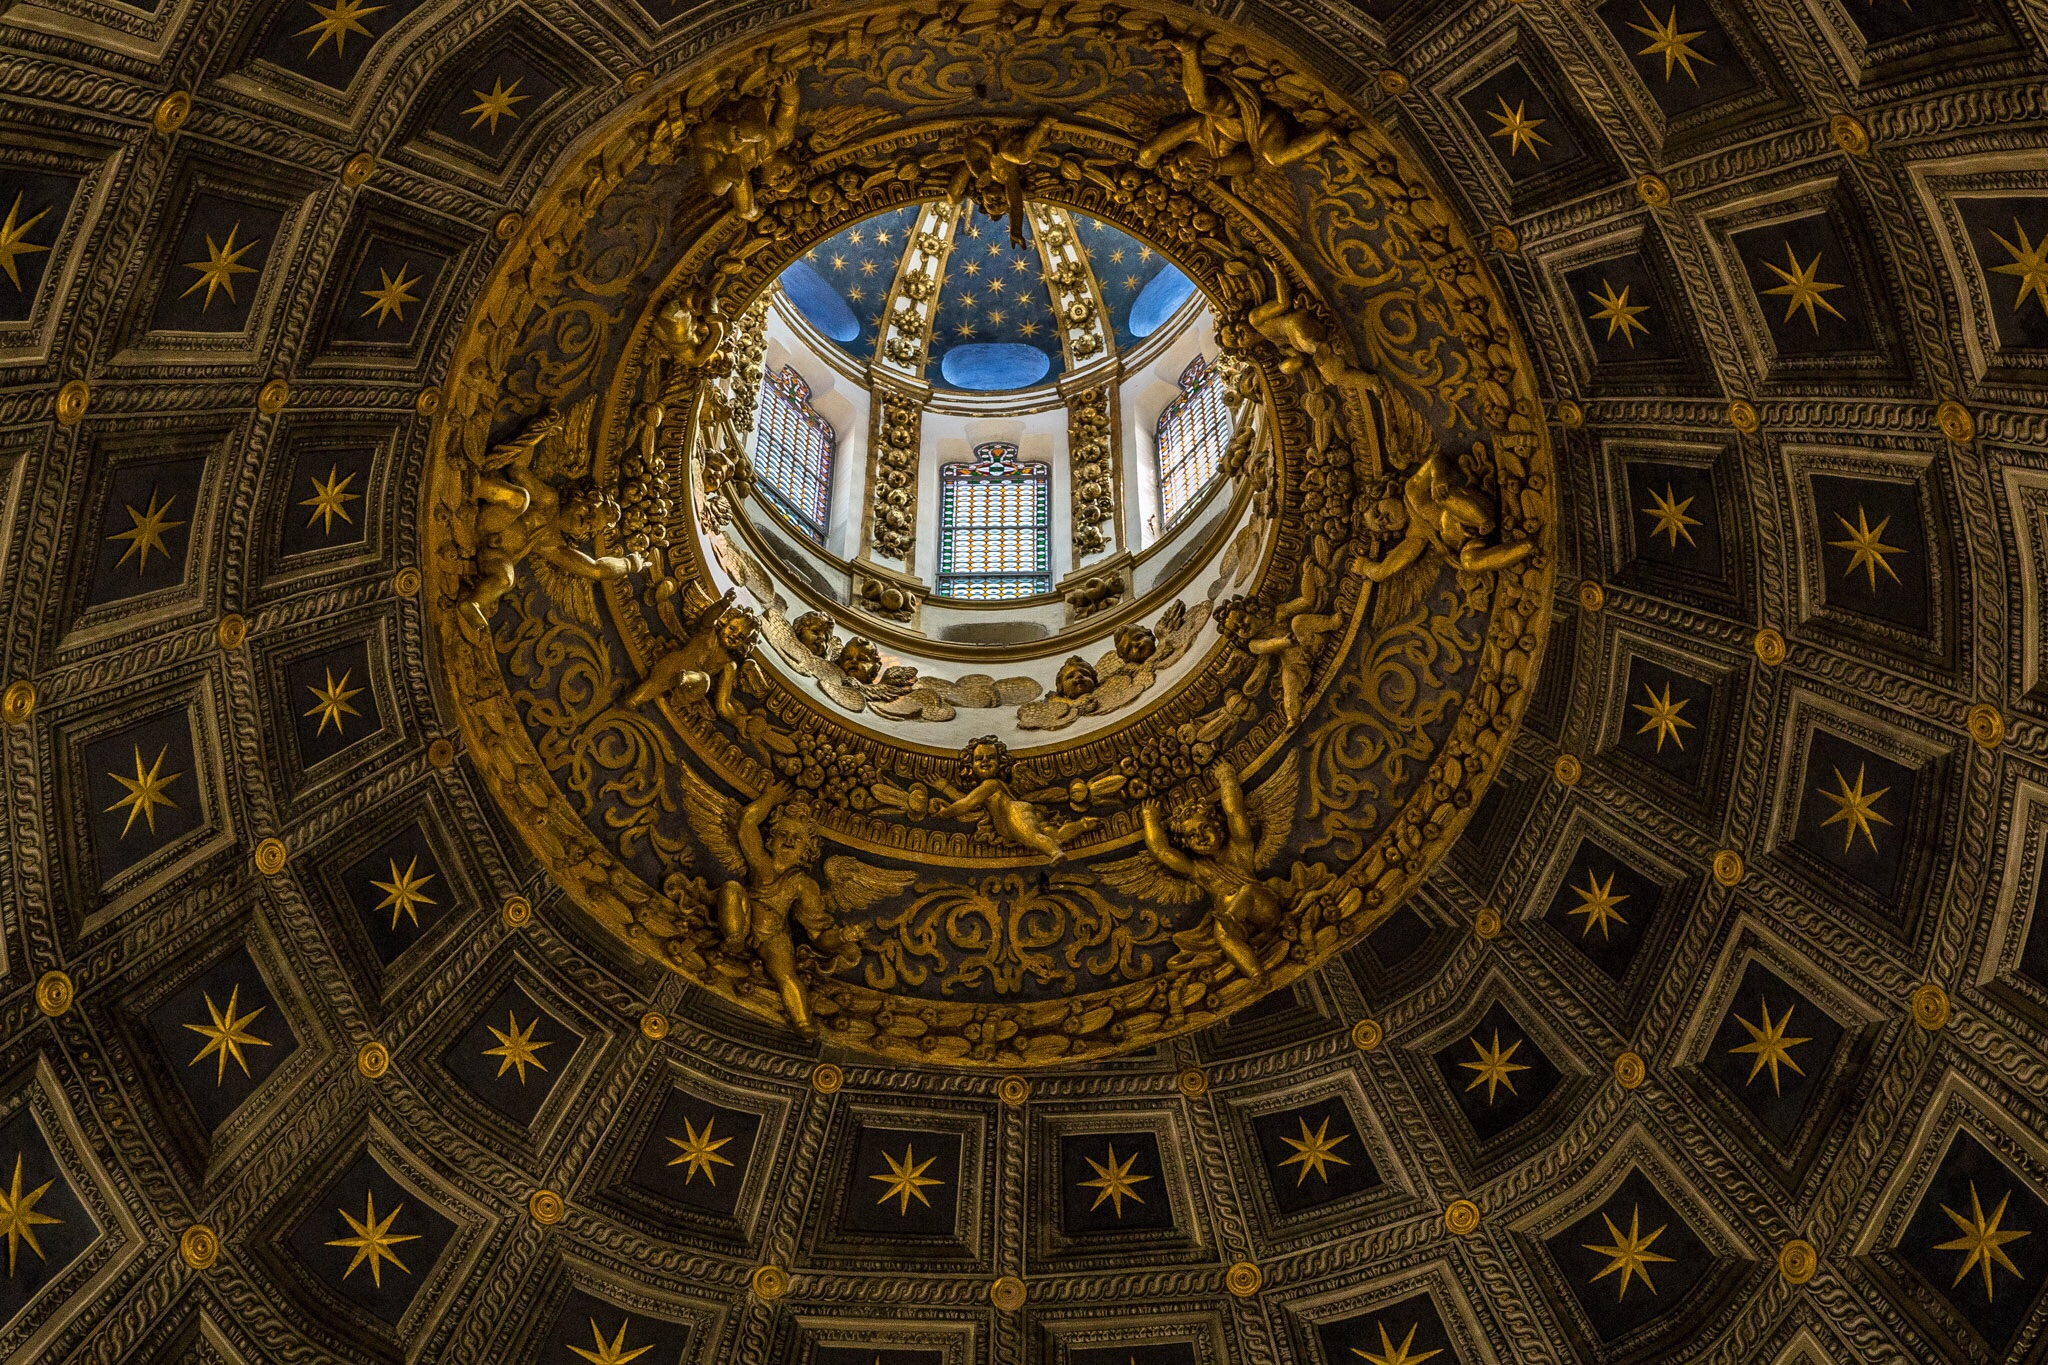 Siena Cathedral by Rick McEvoy architectural interior photographer